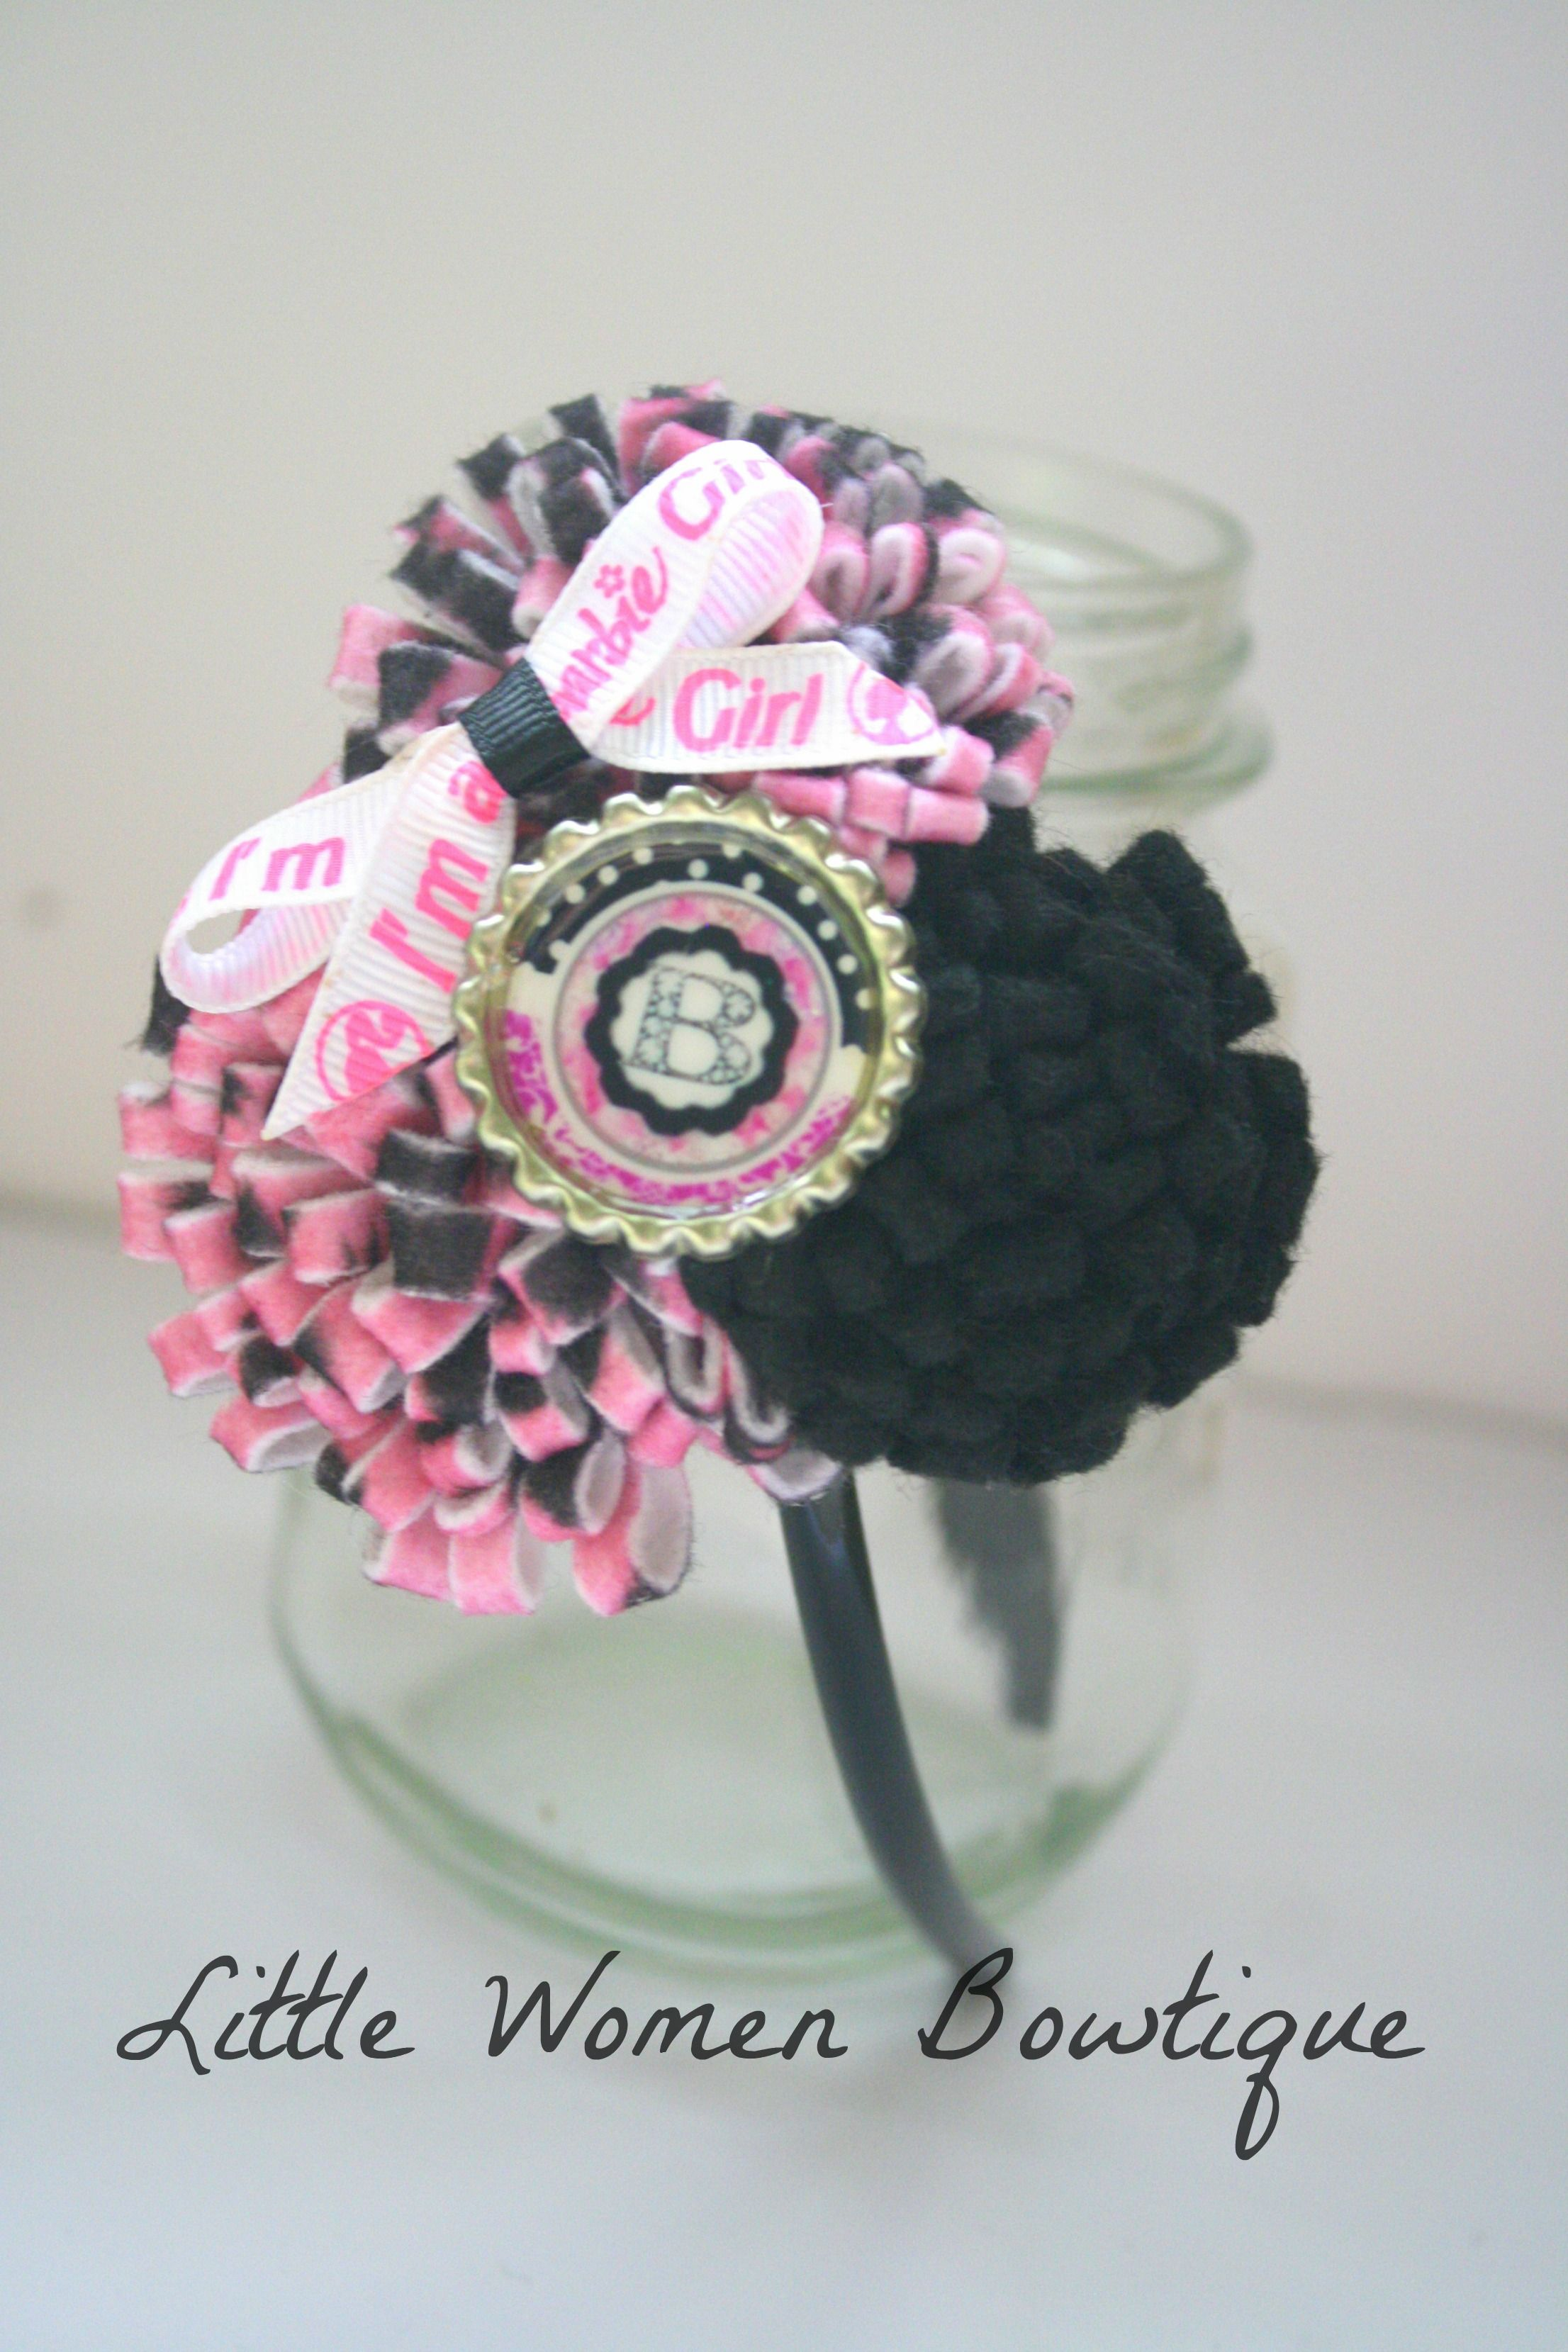 Barbie felt headband. $5 plus shipping. Be sure to check out my fb page. www.facebook.com/littlewomenbowtique